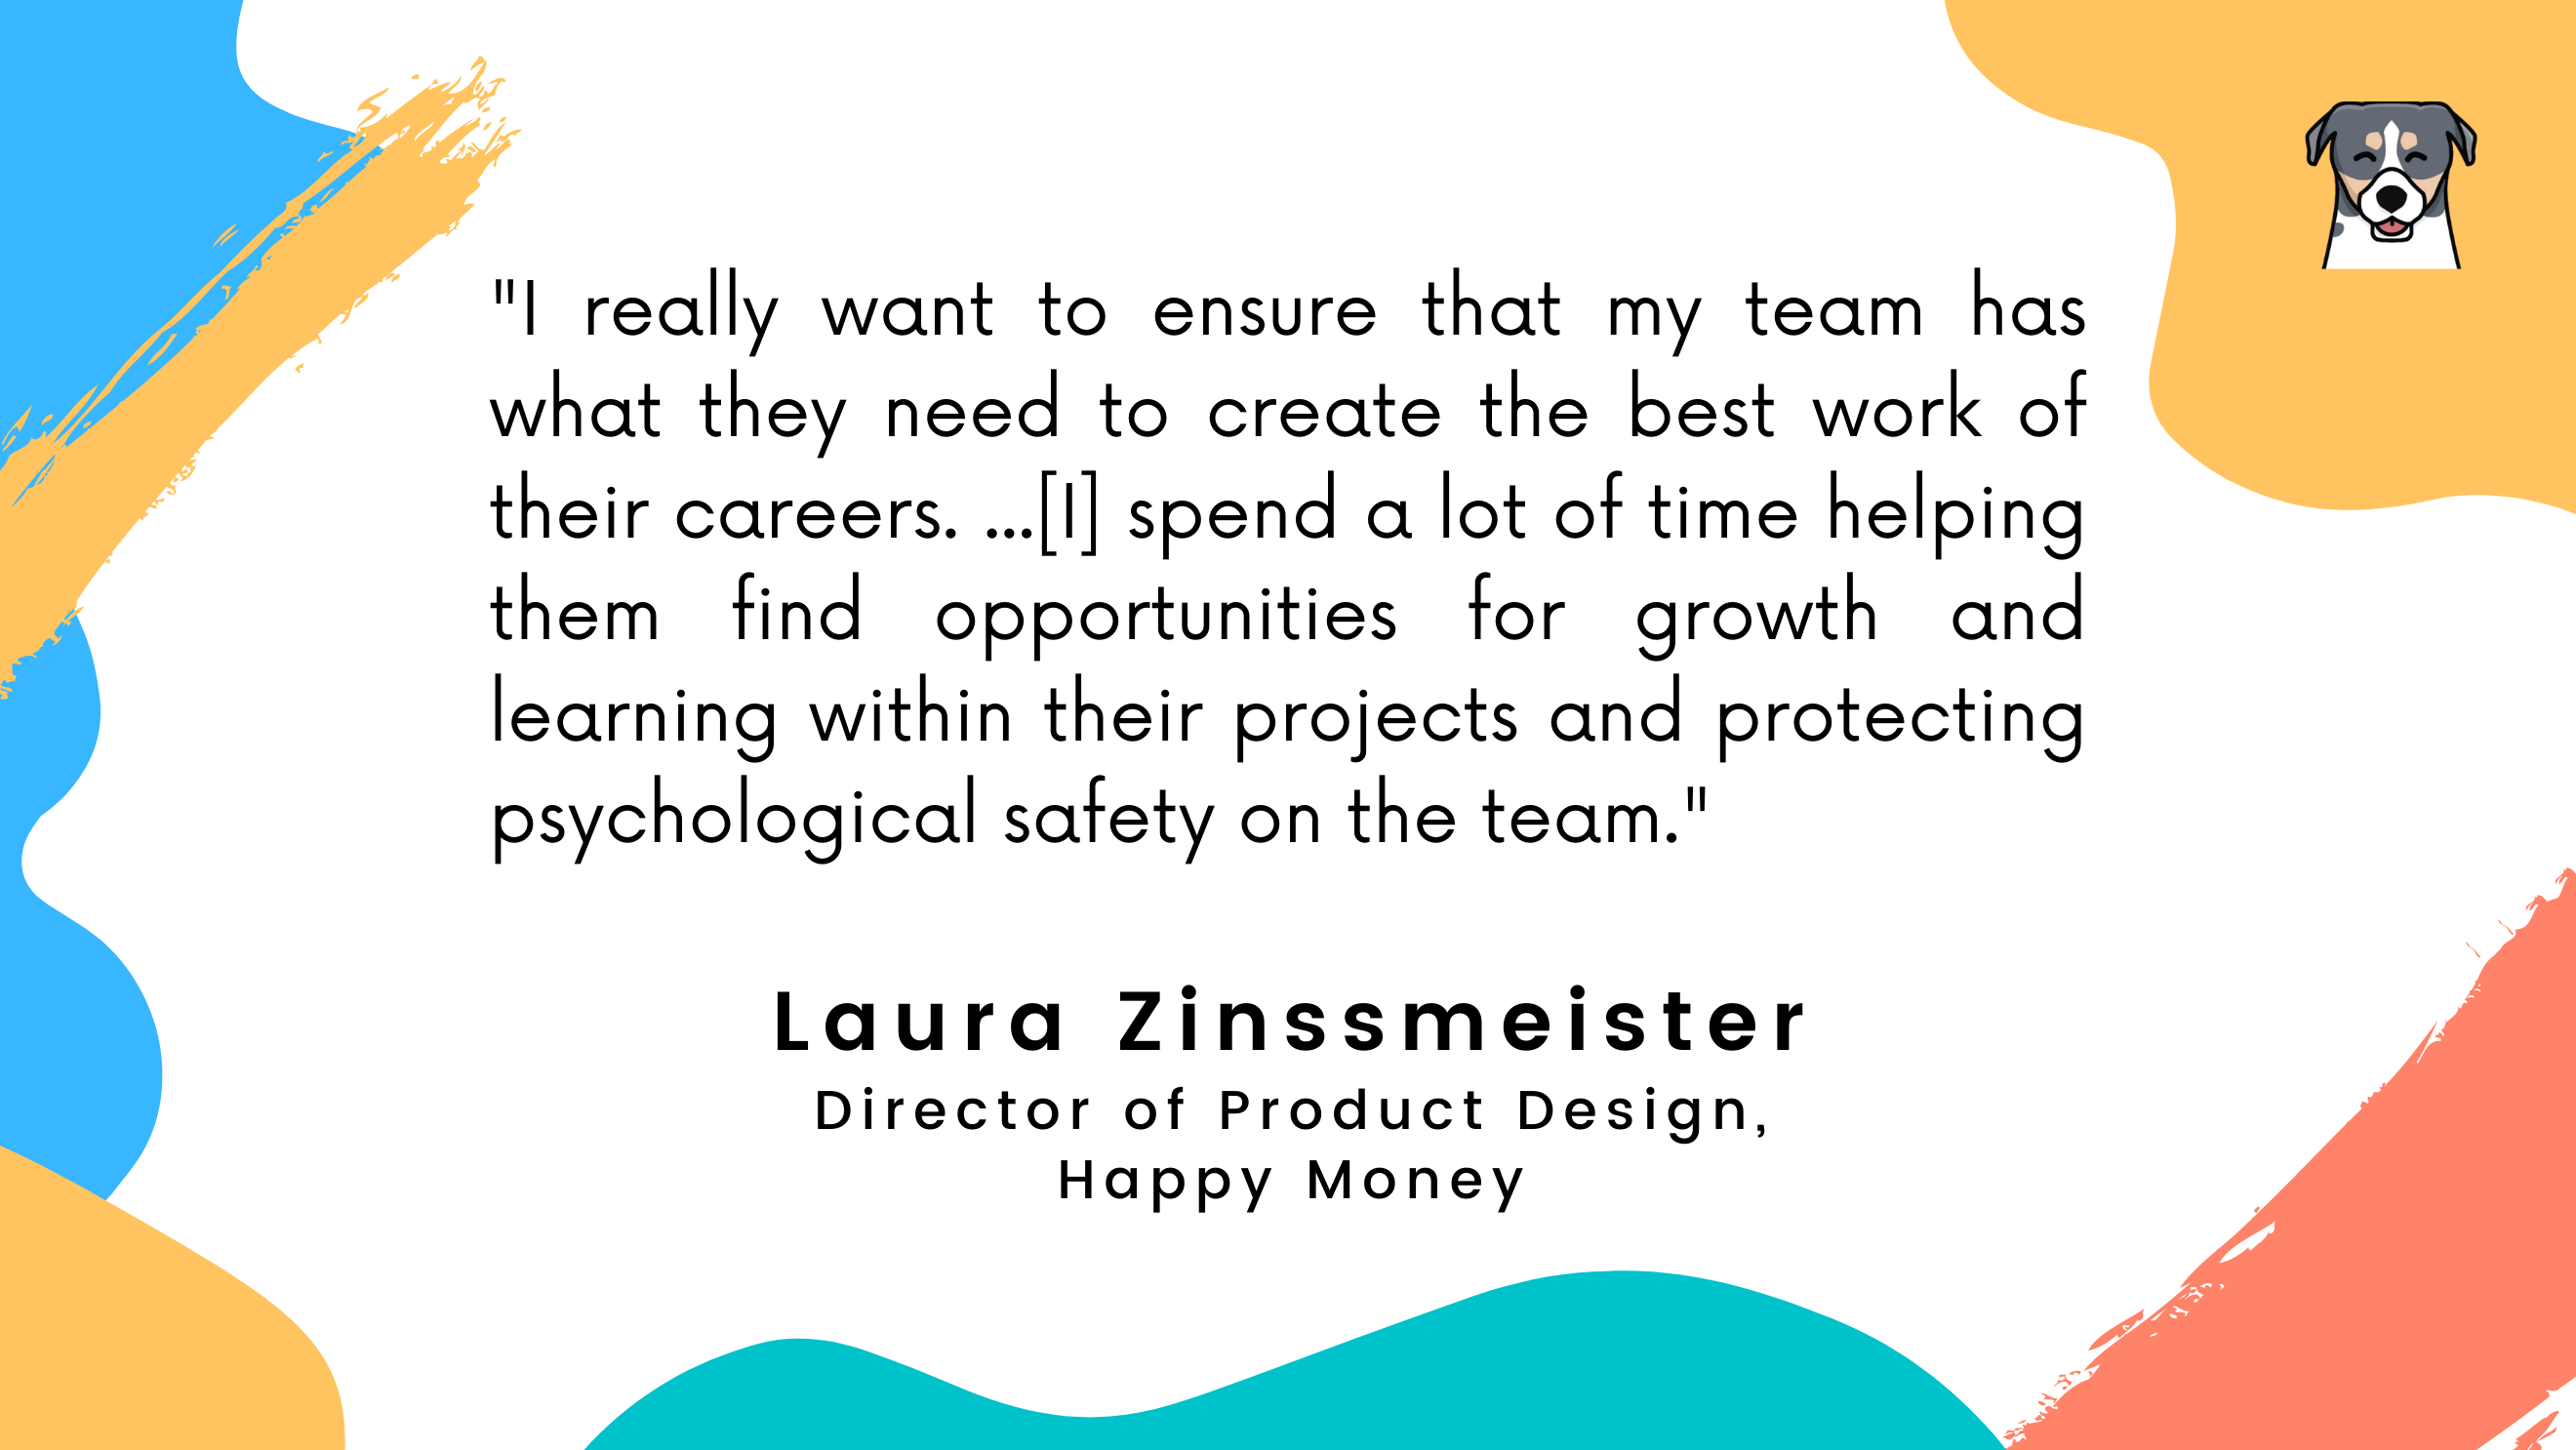 Laura's quote on protecting psychological safety.